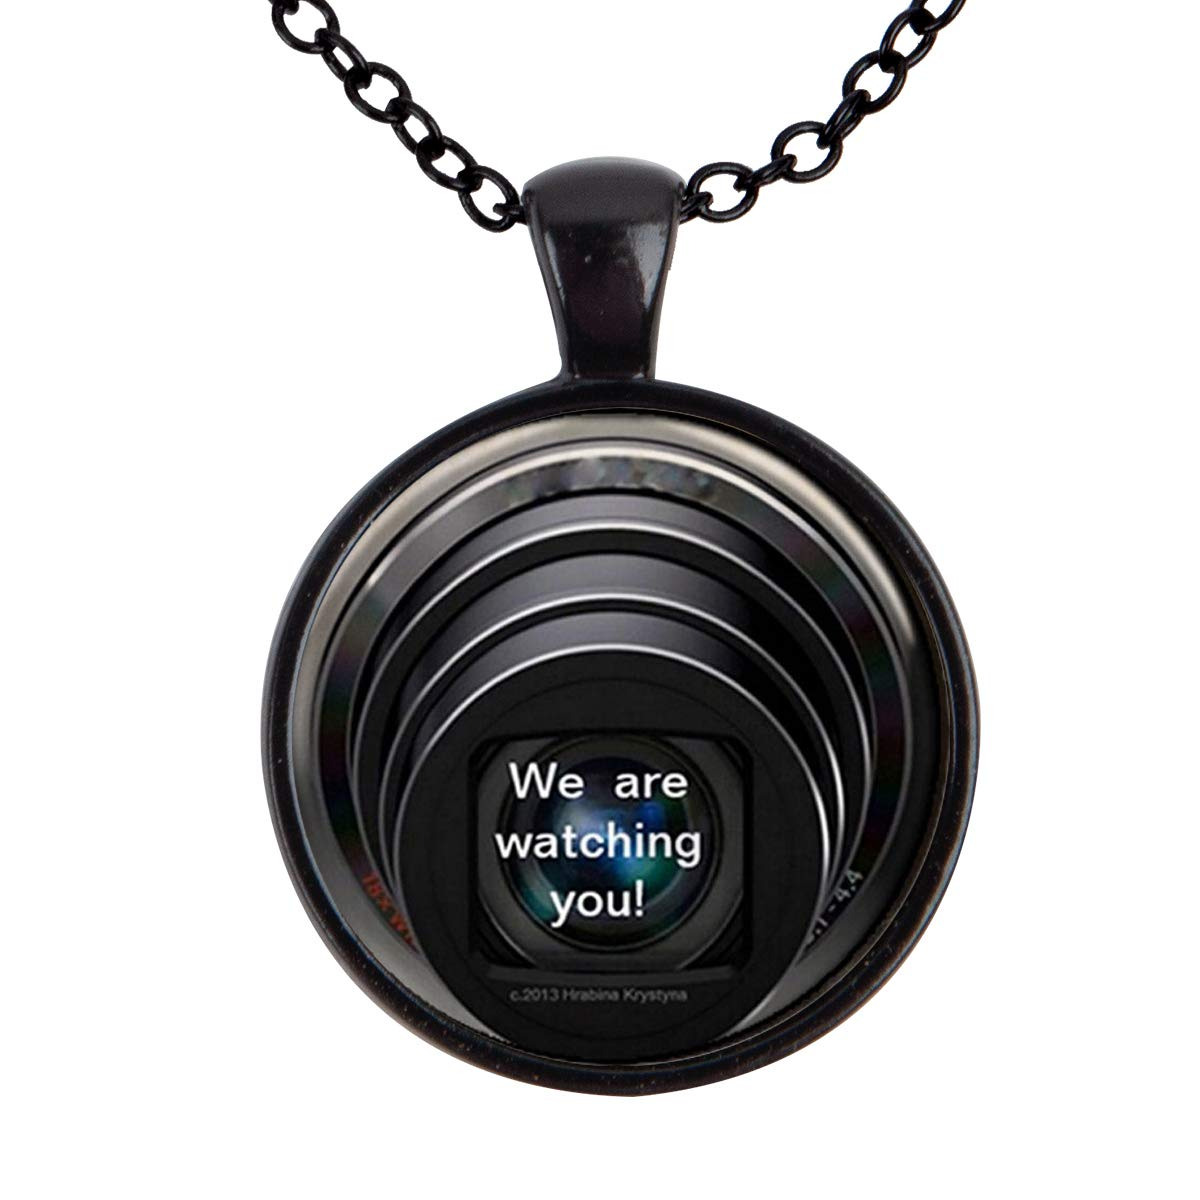 Lightrain We are Watching You Photo Pendant Necklace Vintage Bronze Chain Statement Necklace Handmade Jewelry Gifts